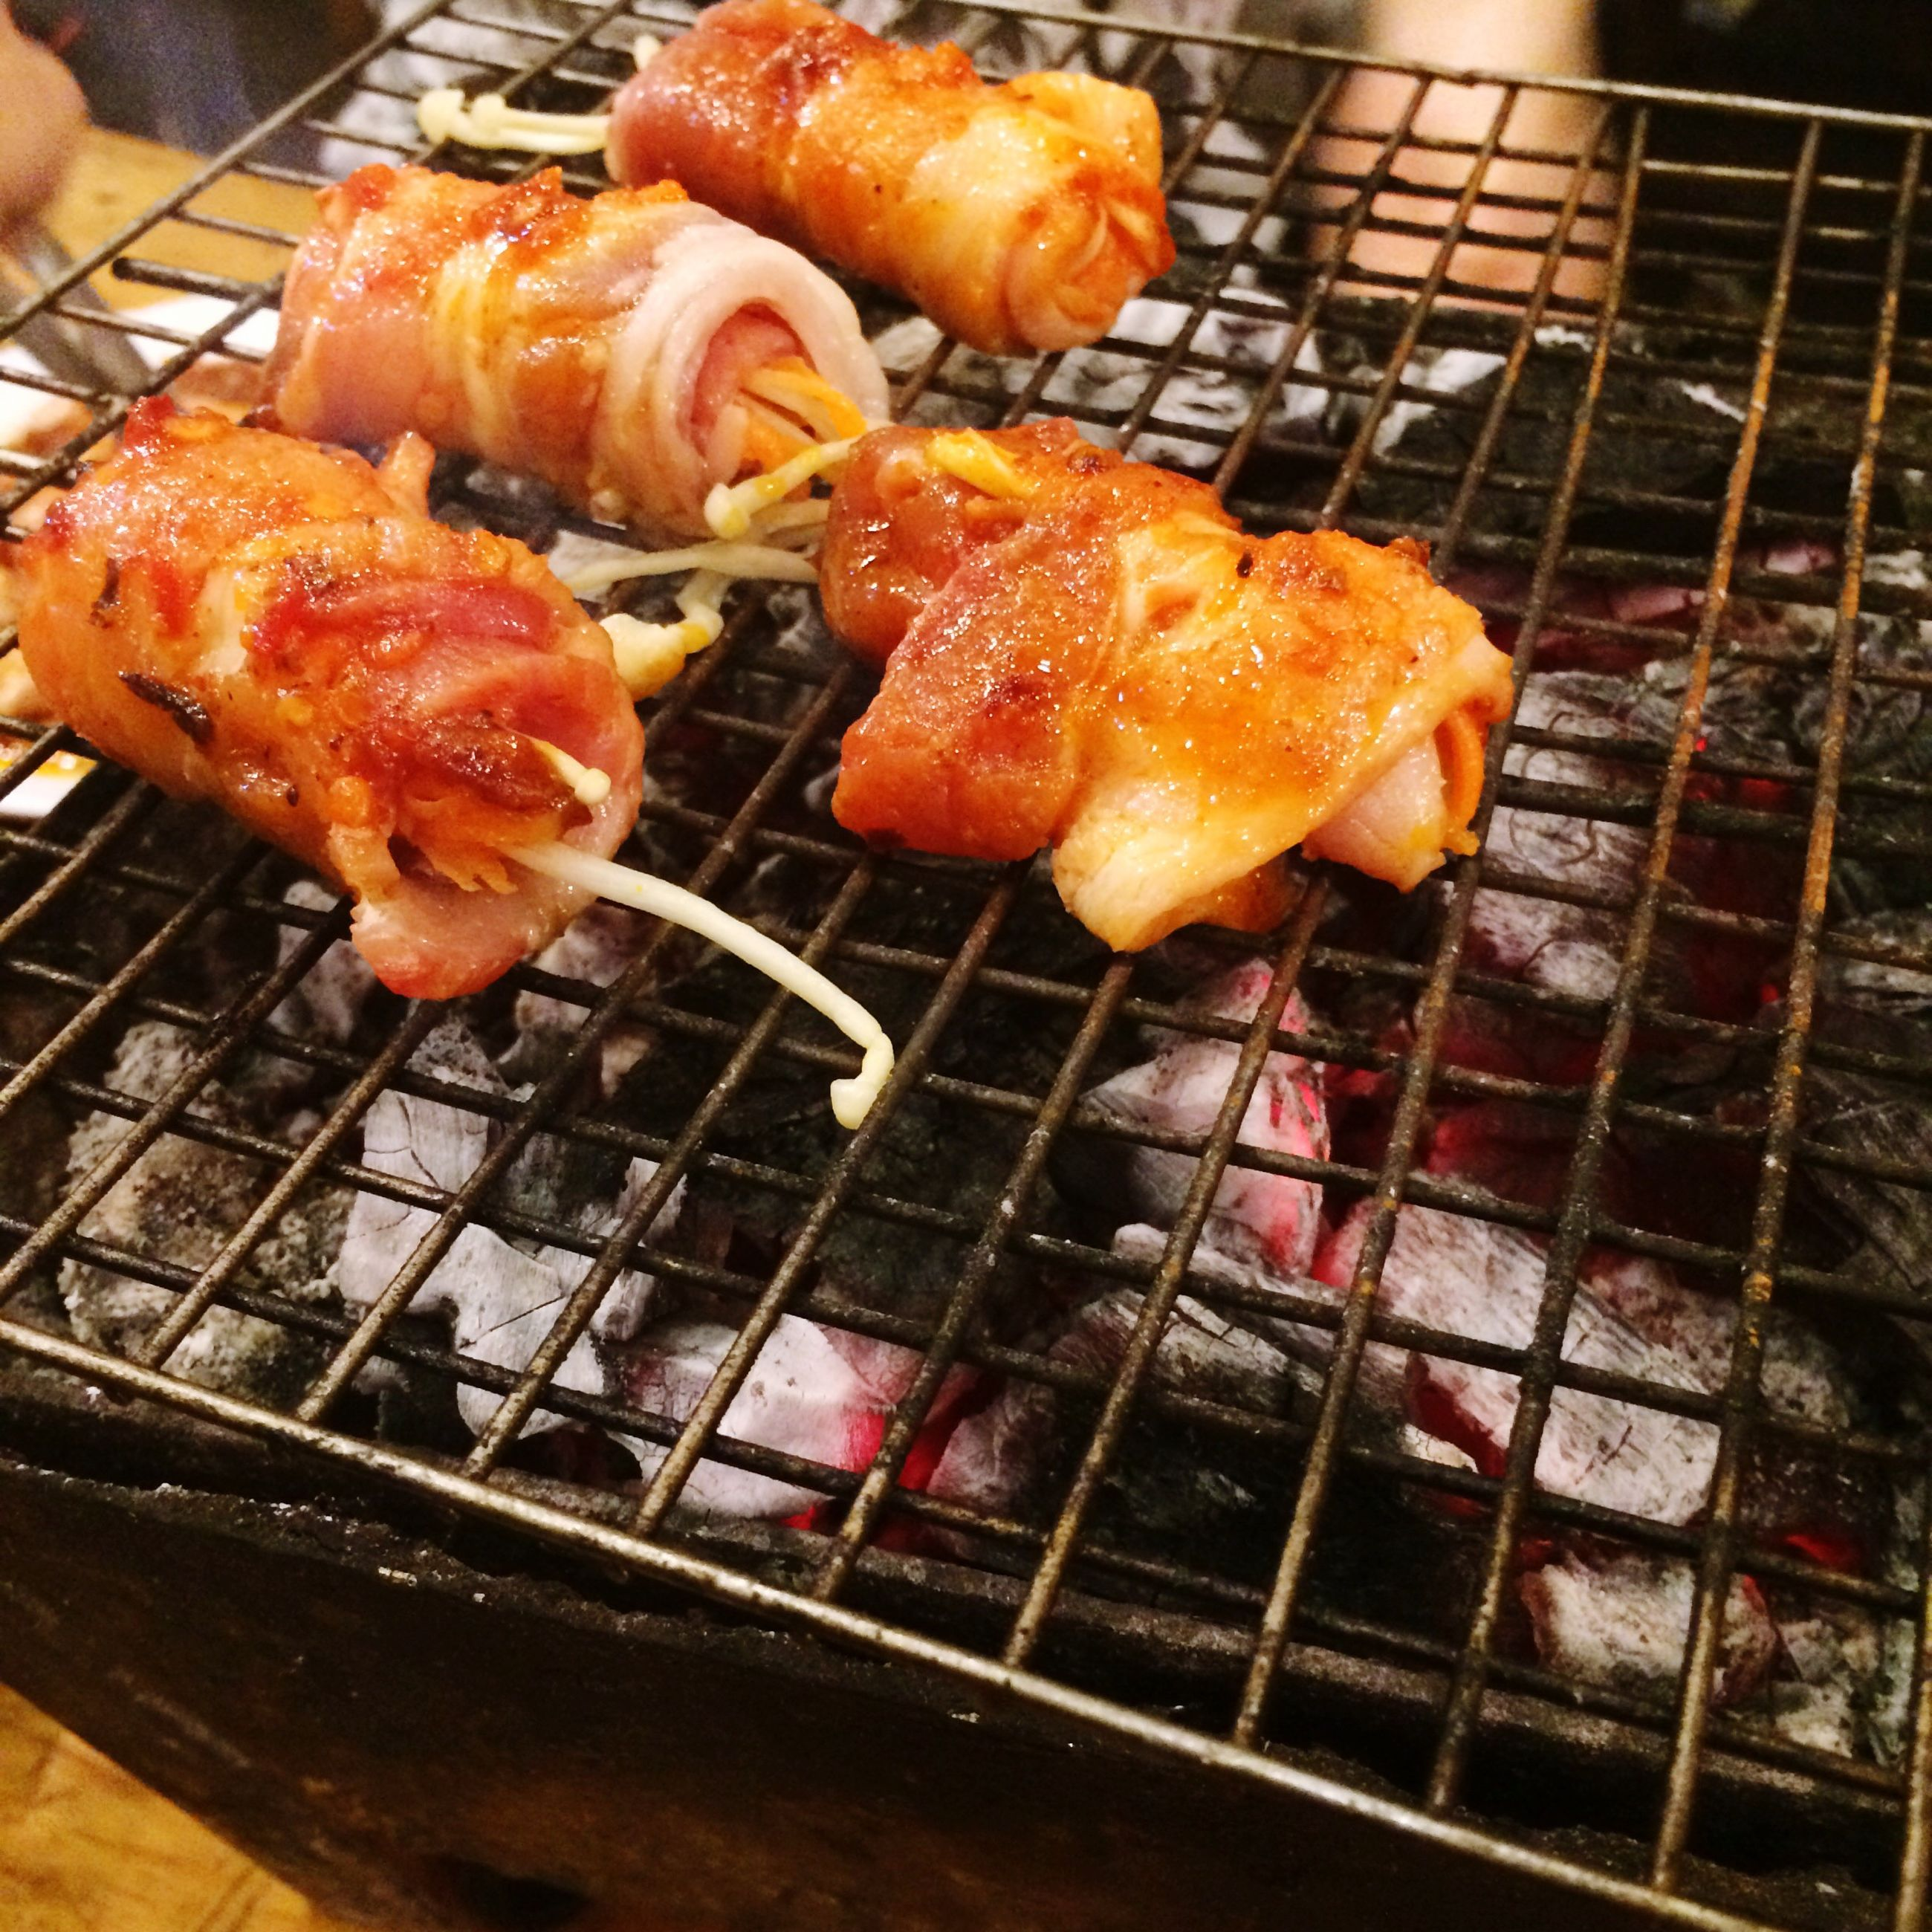 food and drink, food, freshness, barbecue grill, meat, indoors, grilled, barbecue, cooking, preparation, healthy eating, still life, preparing food, sausage, heat - temperature, close-up, roasted, grill, ready-to-eat